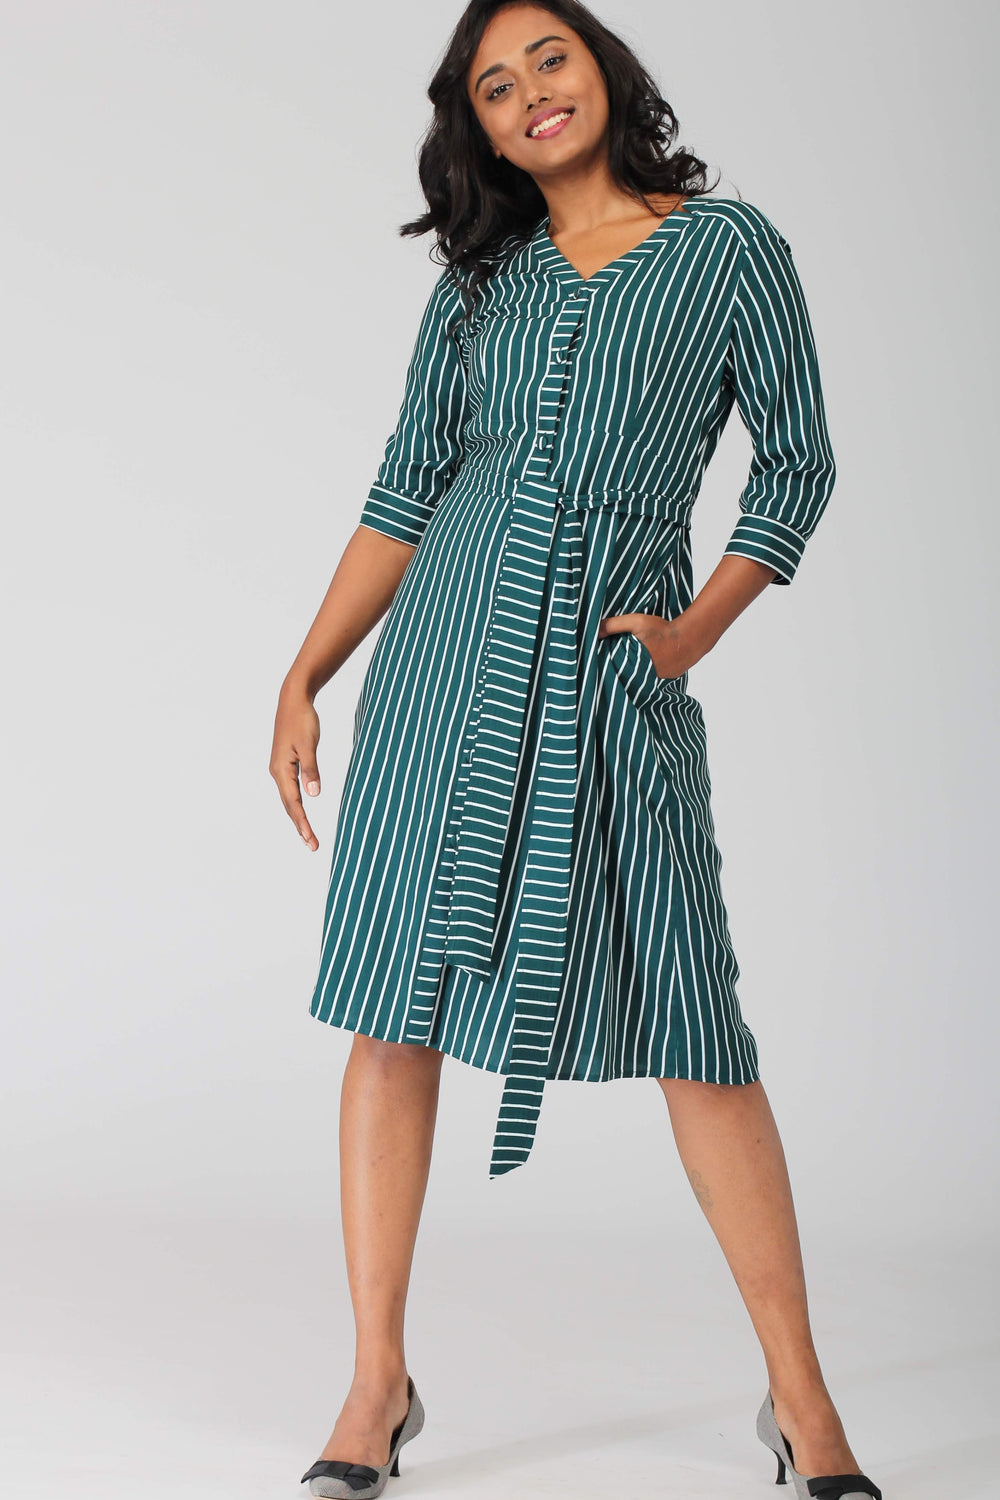 Tokyo A line Shirt Dress with removable belt